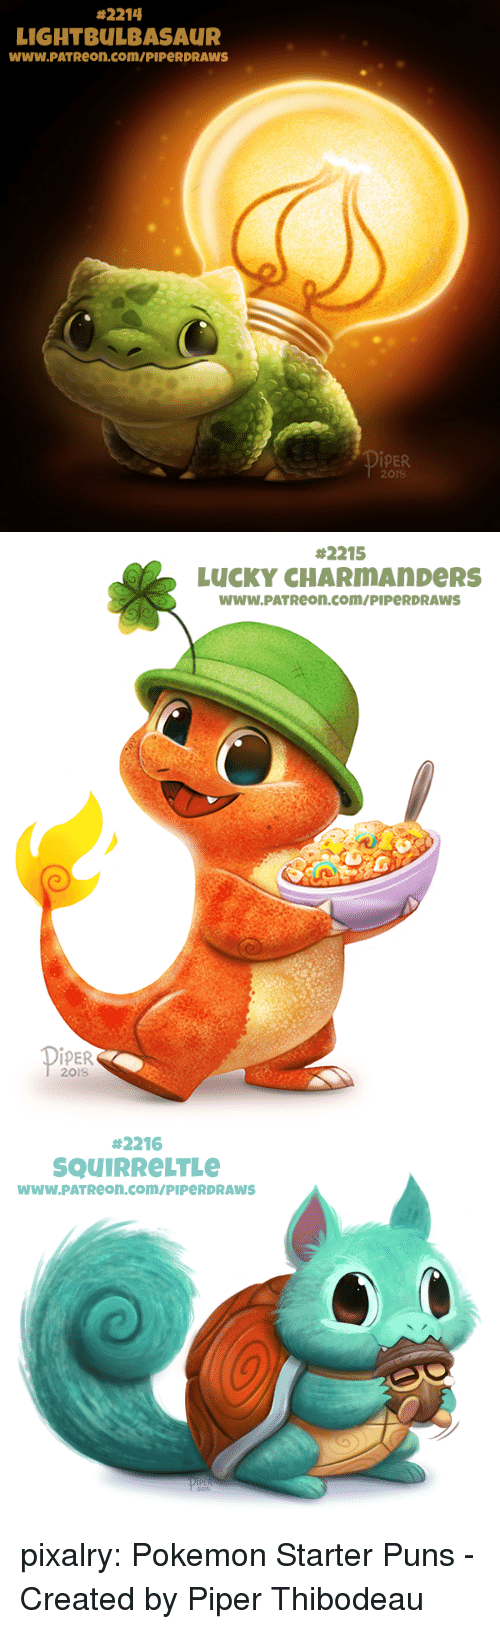 Pokemon, Puns, and Tumblr:  #2214  LIGHTBULBASAUR  www.PATReon.com/PIPeRDRAWS  İPER  201S   #2215  LUCKY CHARMAnDeRS  WWW.PATReon.com/PIPeRDRAWS  İPER  201S   #2216  SQUIRReLTLe  wwW.PATReon.com/PIPeRDRAWS pixalry:  Pokemon Starter Puns - Created by Piper Thibodeau